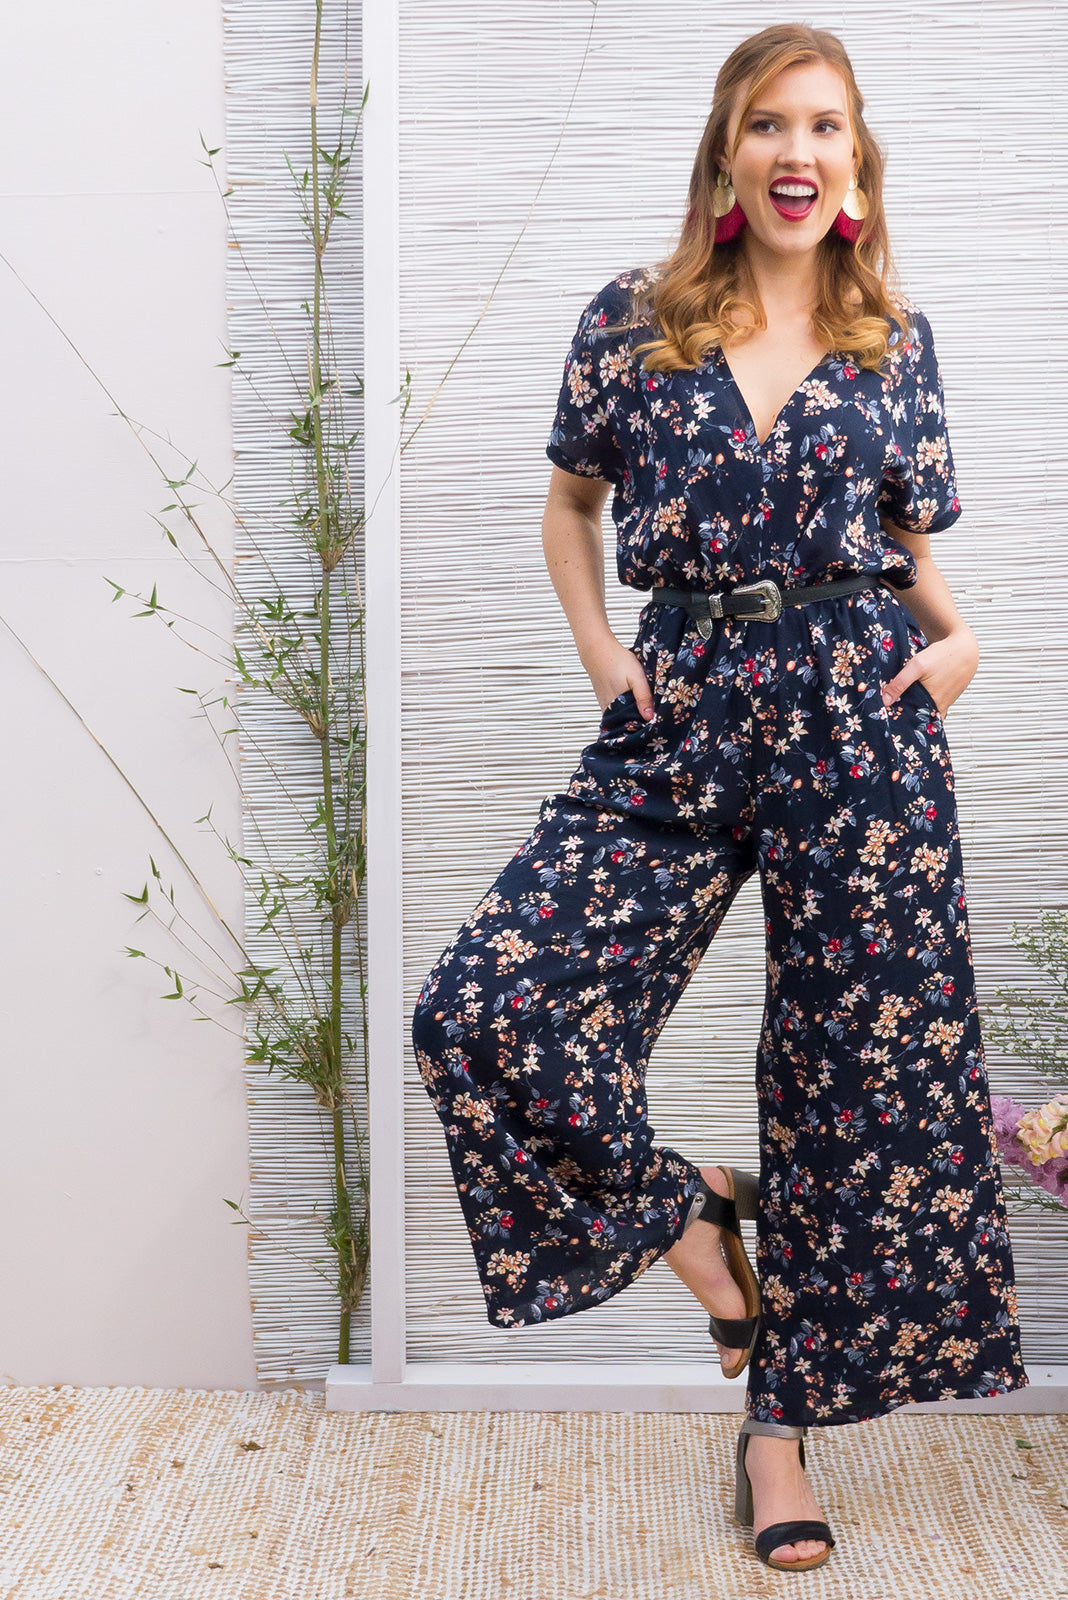 Eclipse full length Jumpsuit with a easy fit elastic waist and tie back in a dark bright ditzy floral print on a navy base in a easy care rayon polyester blend fabric